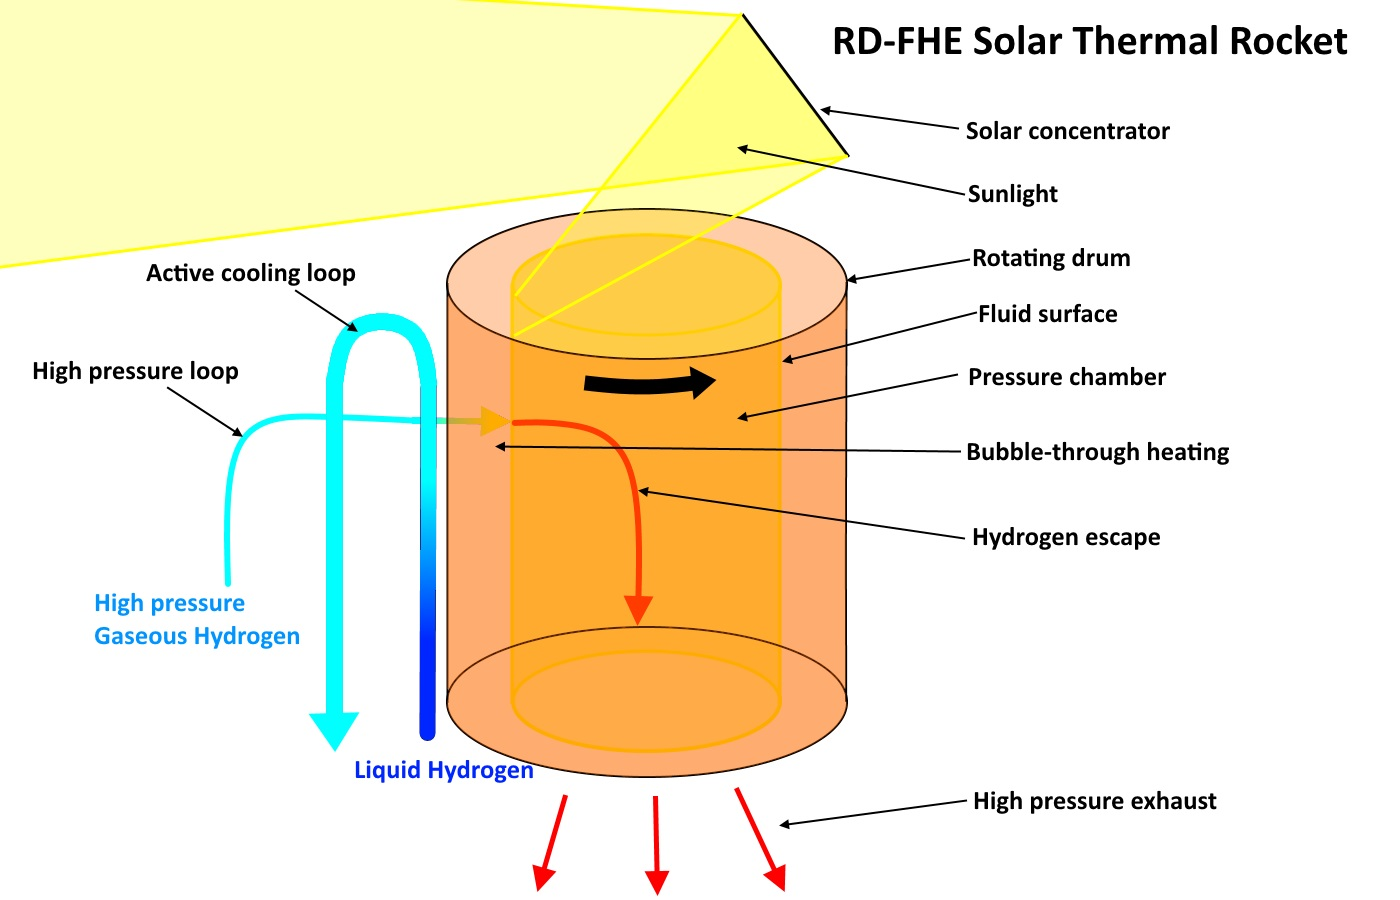 Tough Sf Liquid Rhenium Solar Thermal Rocket Diagram Pdf Merc 650 3 Cyl Internal External Wiring The Is For Illustrative Purposes Only A Functional Schematic Would Be More Detailed Here An Explanation Each Component